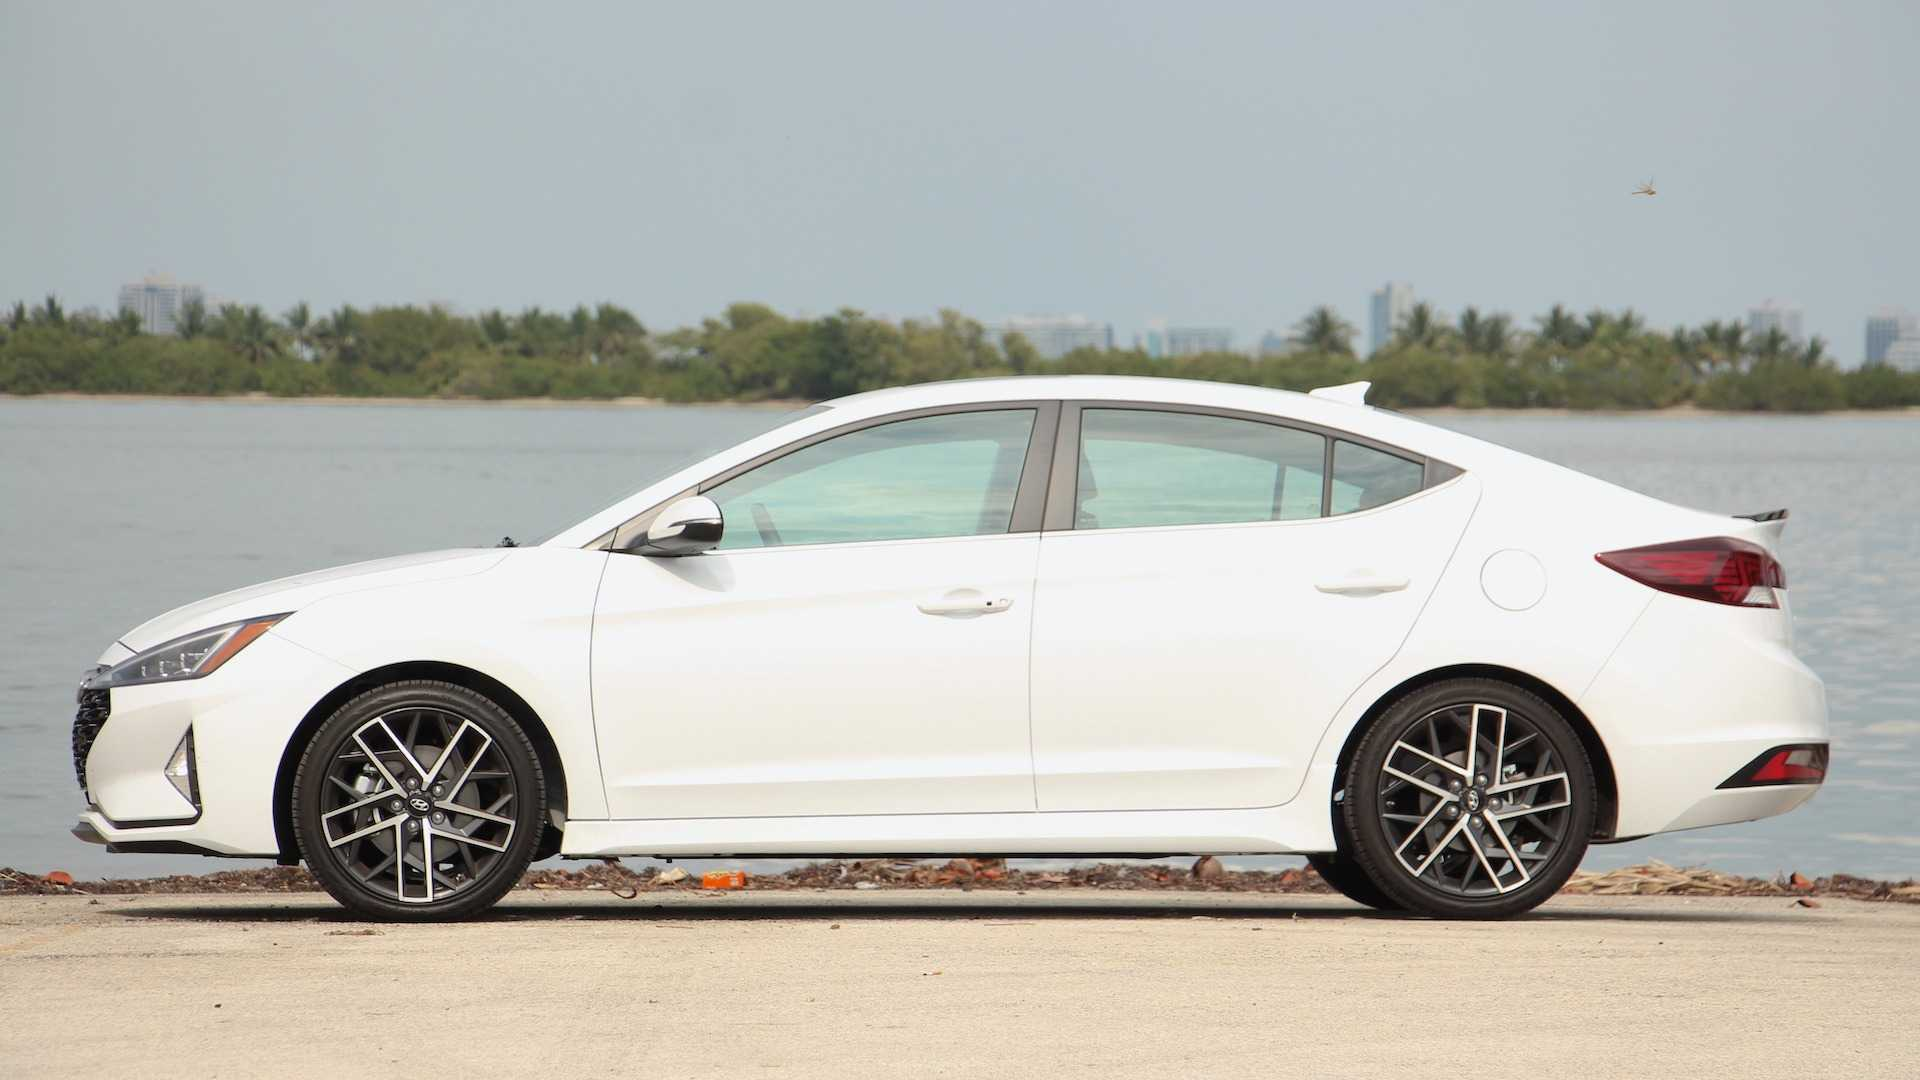 2019 Hyundai Elantra Sport Review: It Has A Great Personality